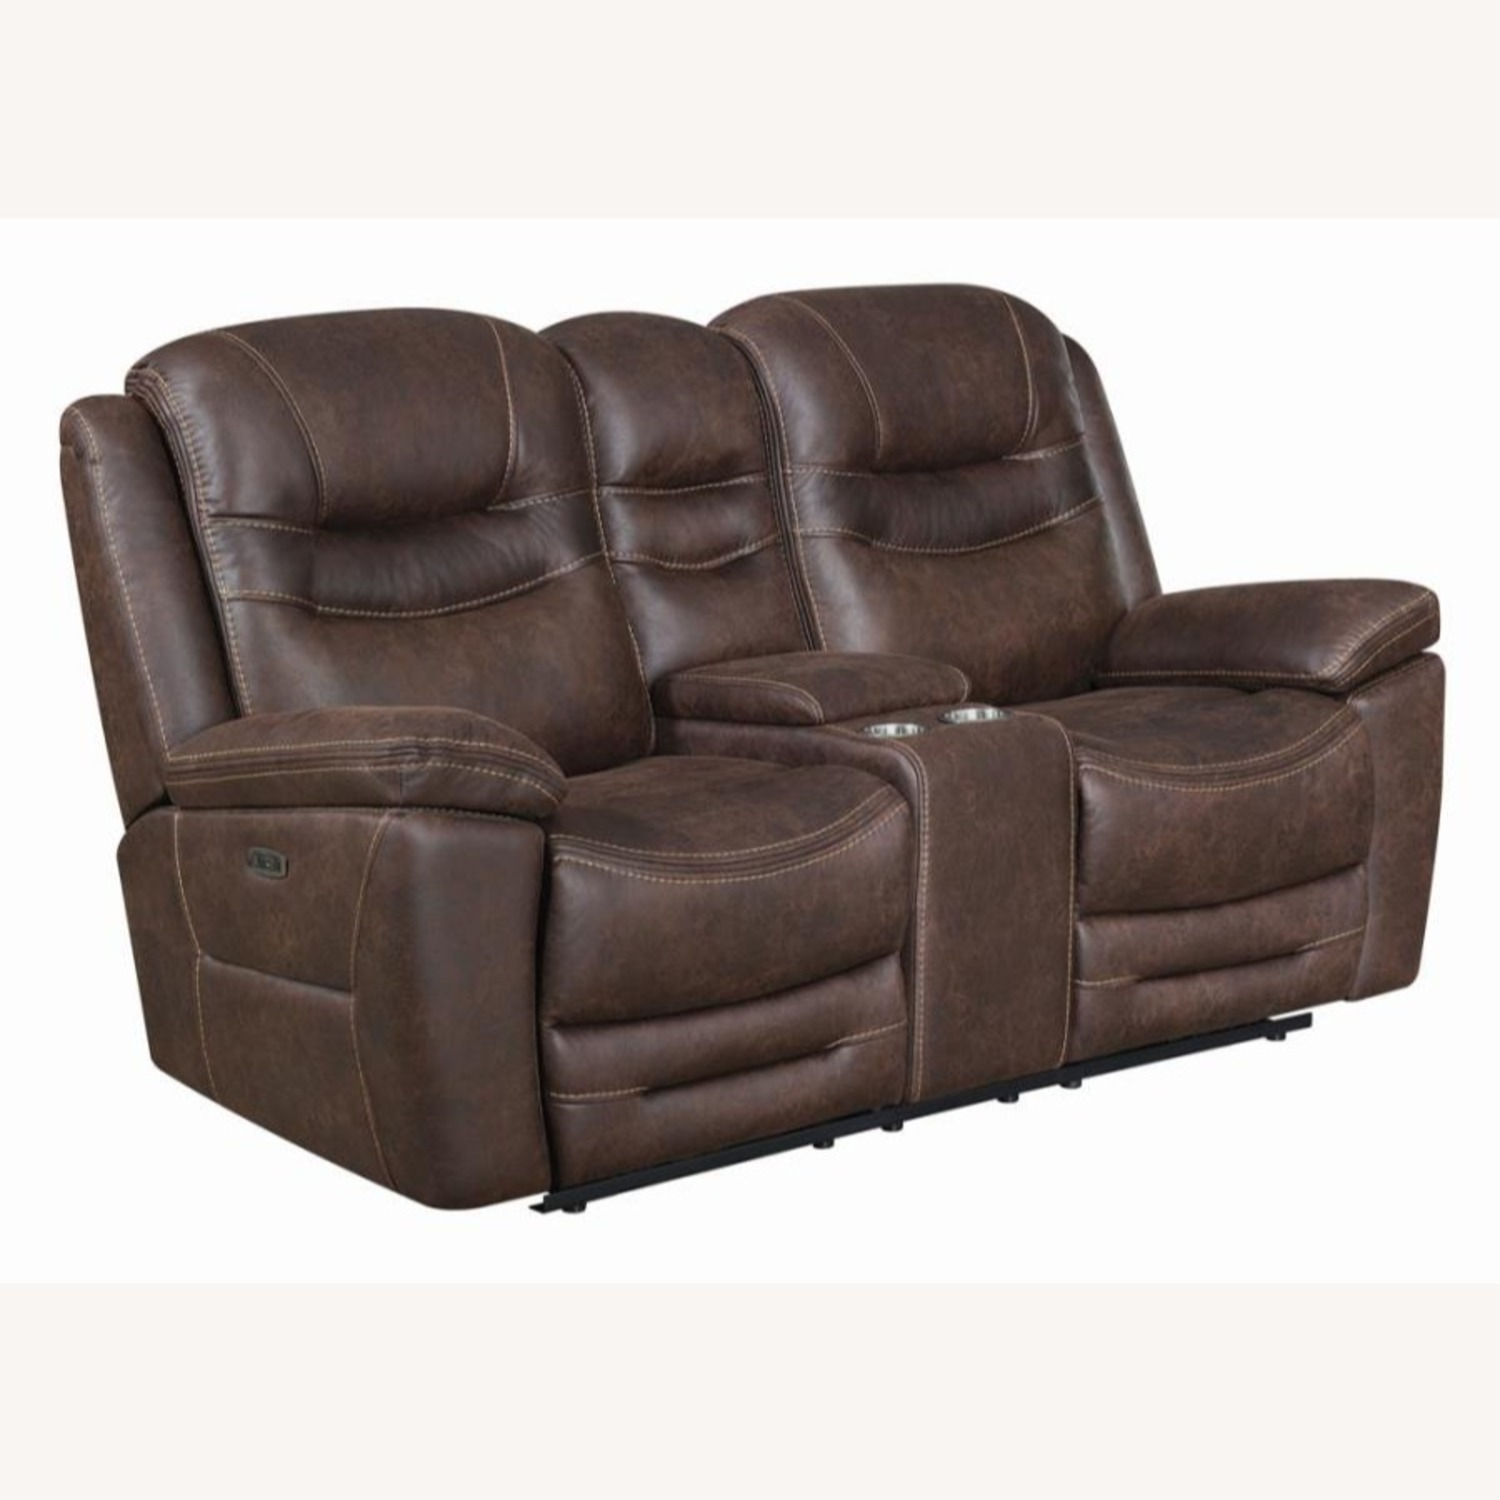 Power Loveseat Recliner In Chocolate Upholstery - image-0